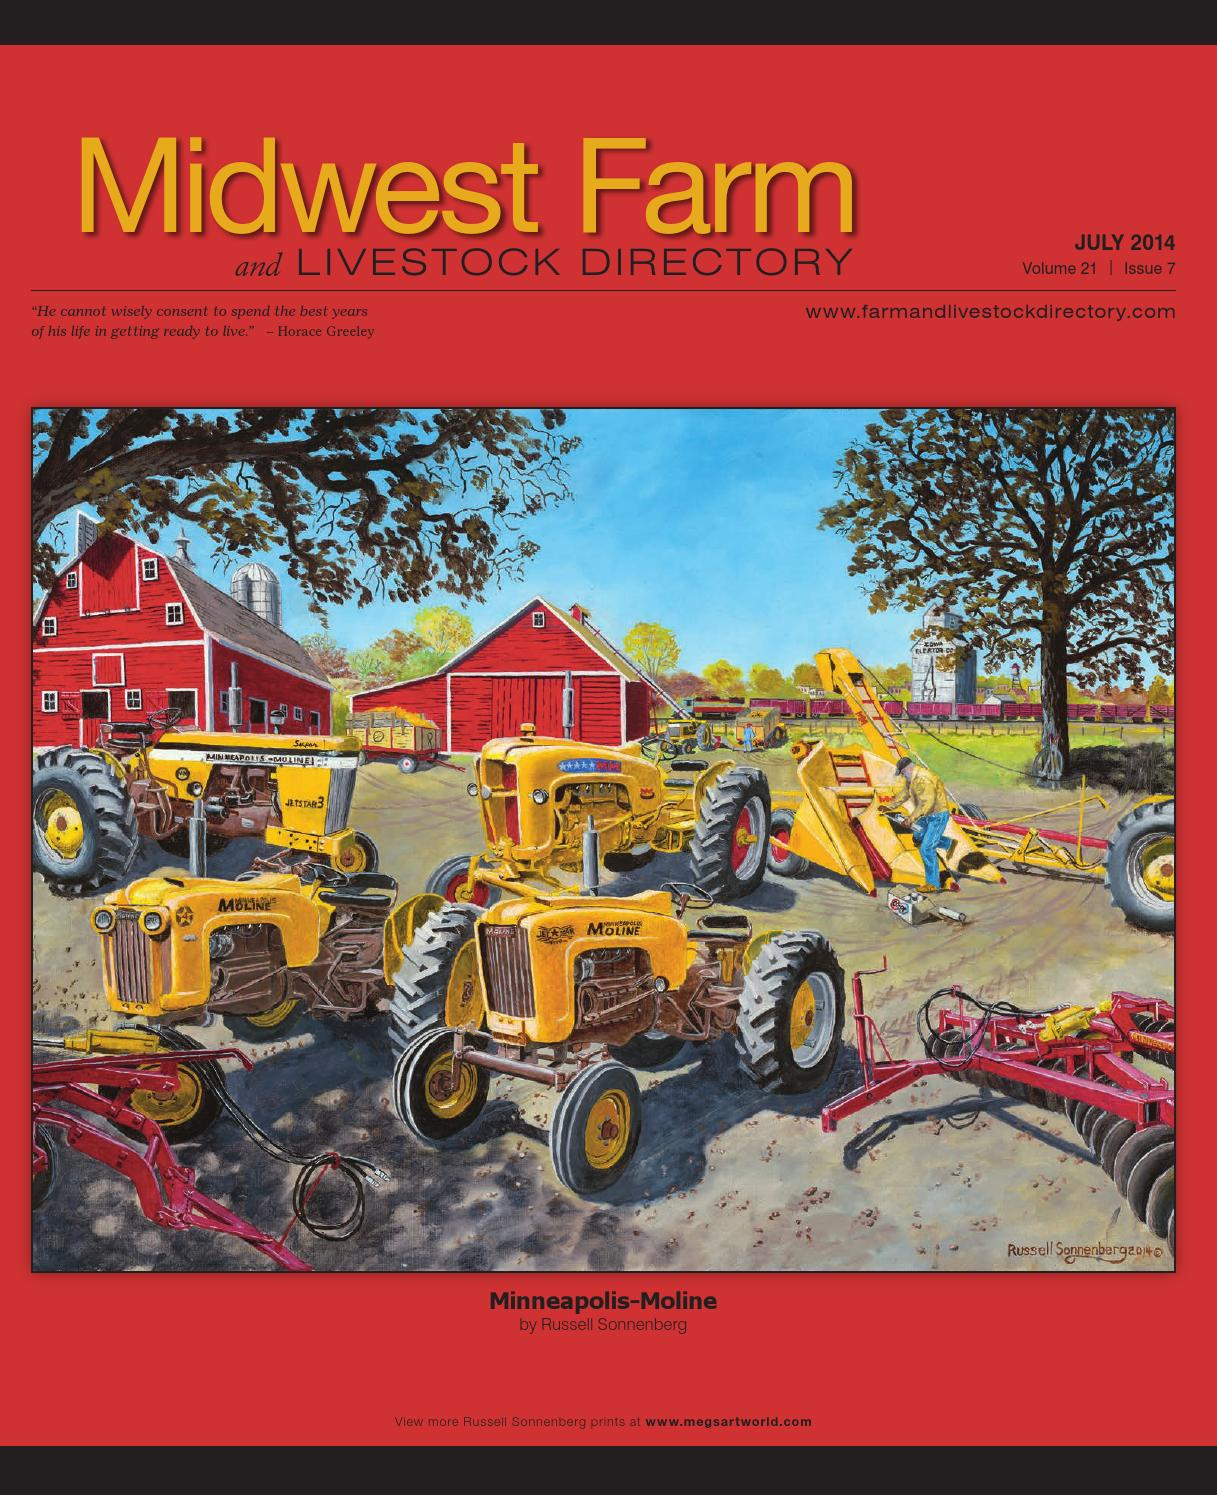 Midwest Farm And Livestock Directory July 2014 By Five Star Minneapolis Moline Tractor Wiring Diagrams Publishing Inc Issuu